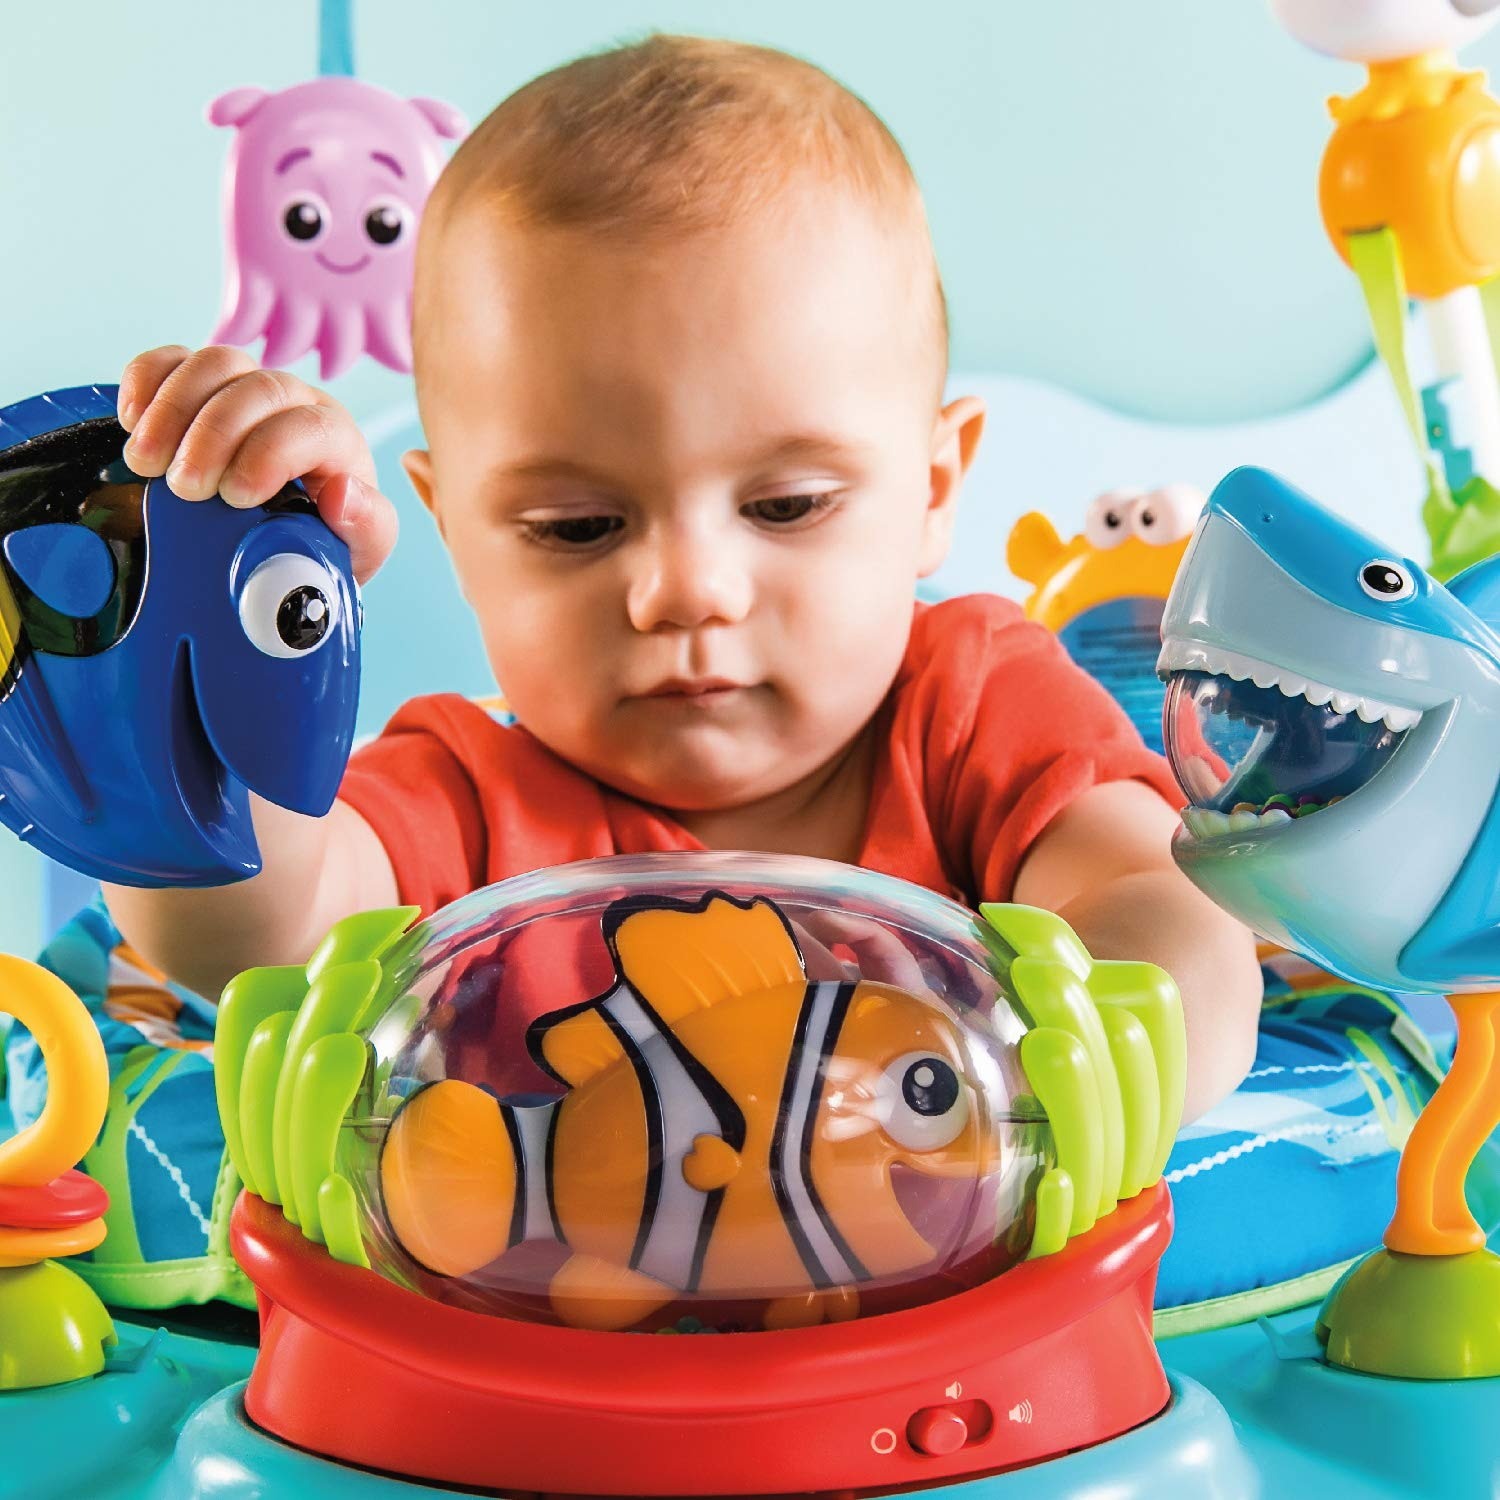 fecc934df5a7 Amazon.com   Disney Baby Finding Nemo Sea of Activities Jumper   Baby